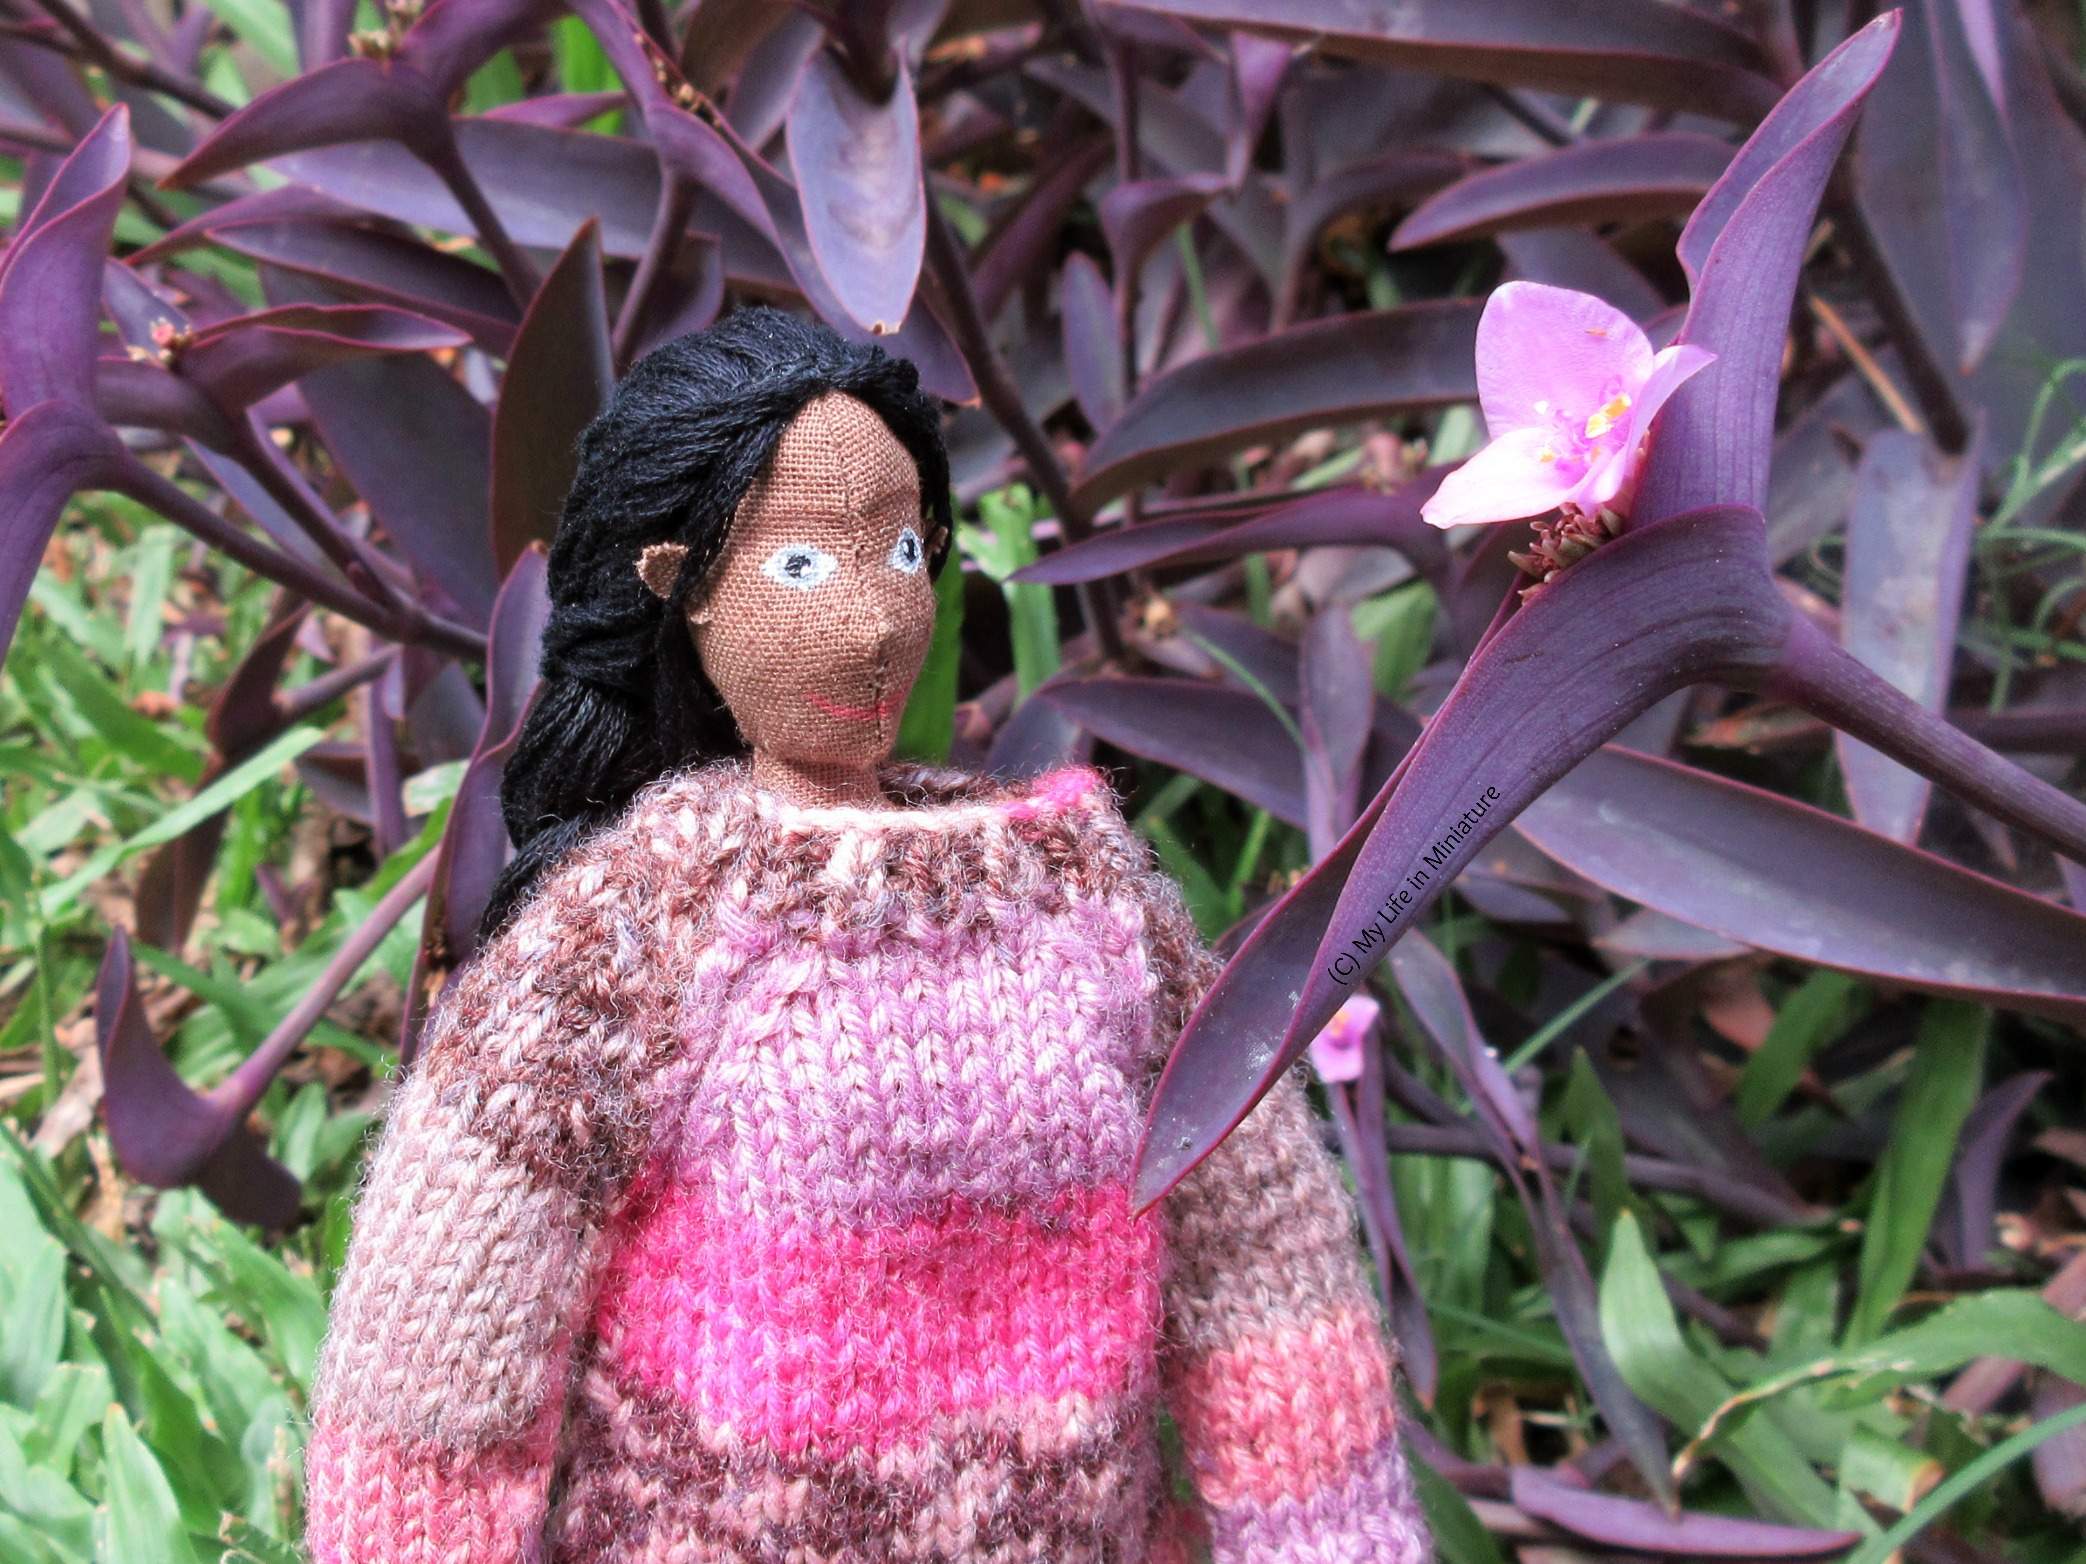 Petra looks at a pink flower nestled in purple leaves outside, black hair in a braid down her back.